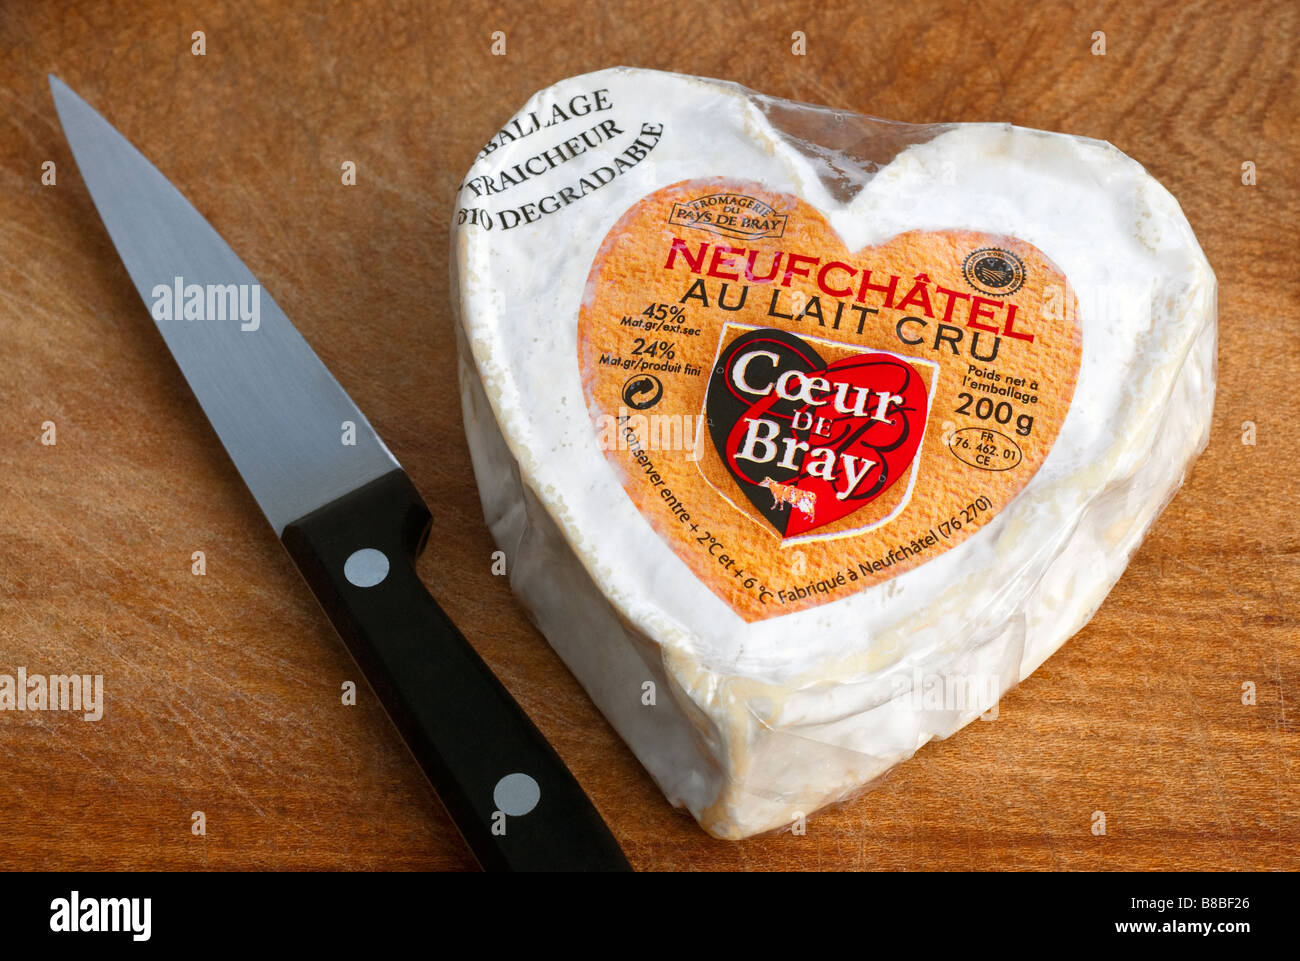 French heart shaped Neufchatel / Normandy fresh soft cheese on wood chopping board. - Stock Image